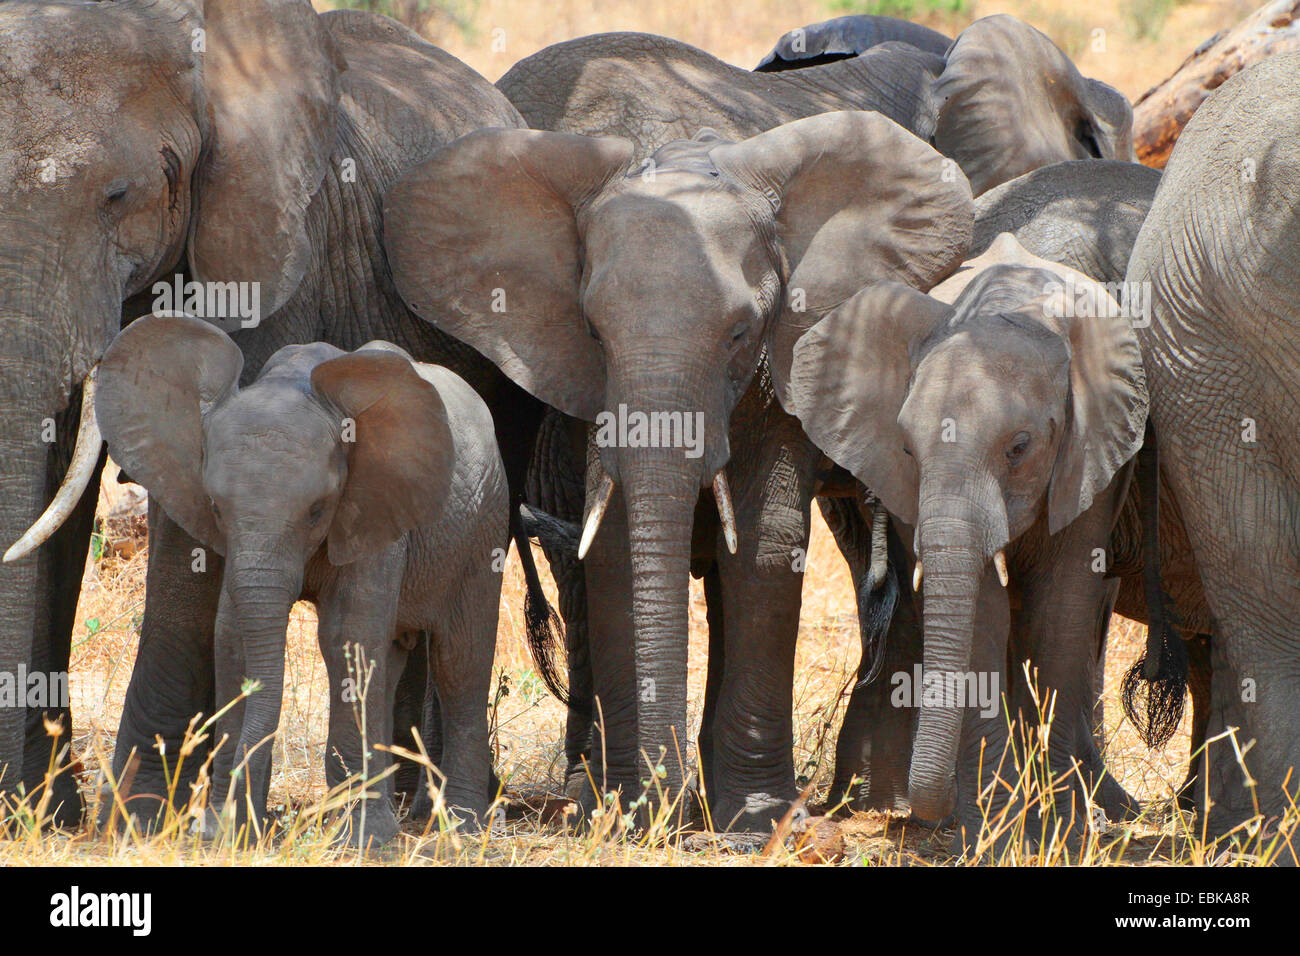 African elephant (Loxodonta africana), group with young elephants standing crowded together as a protection against - Stock Image